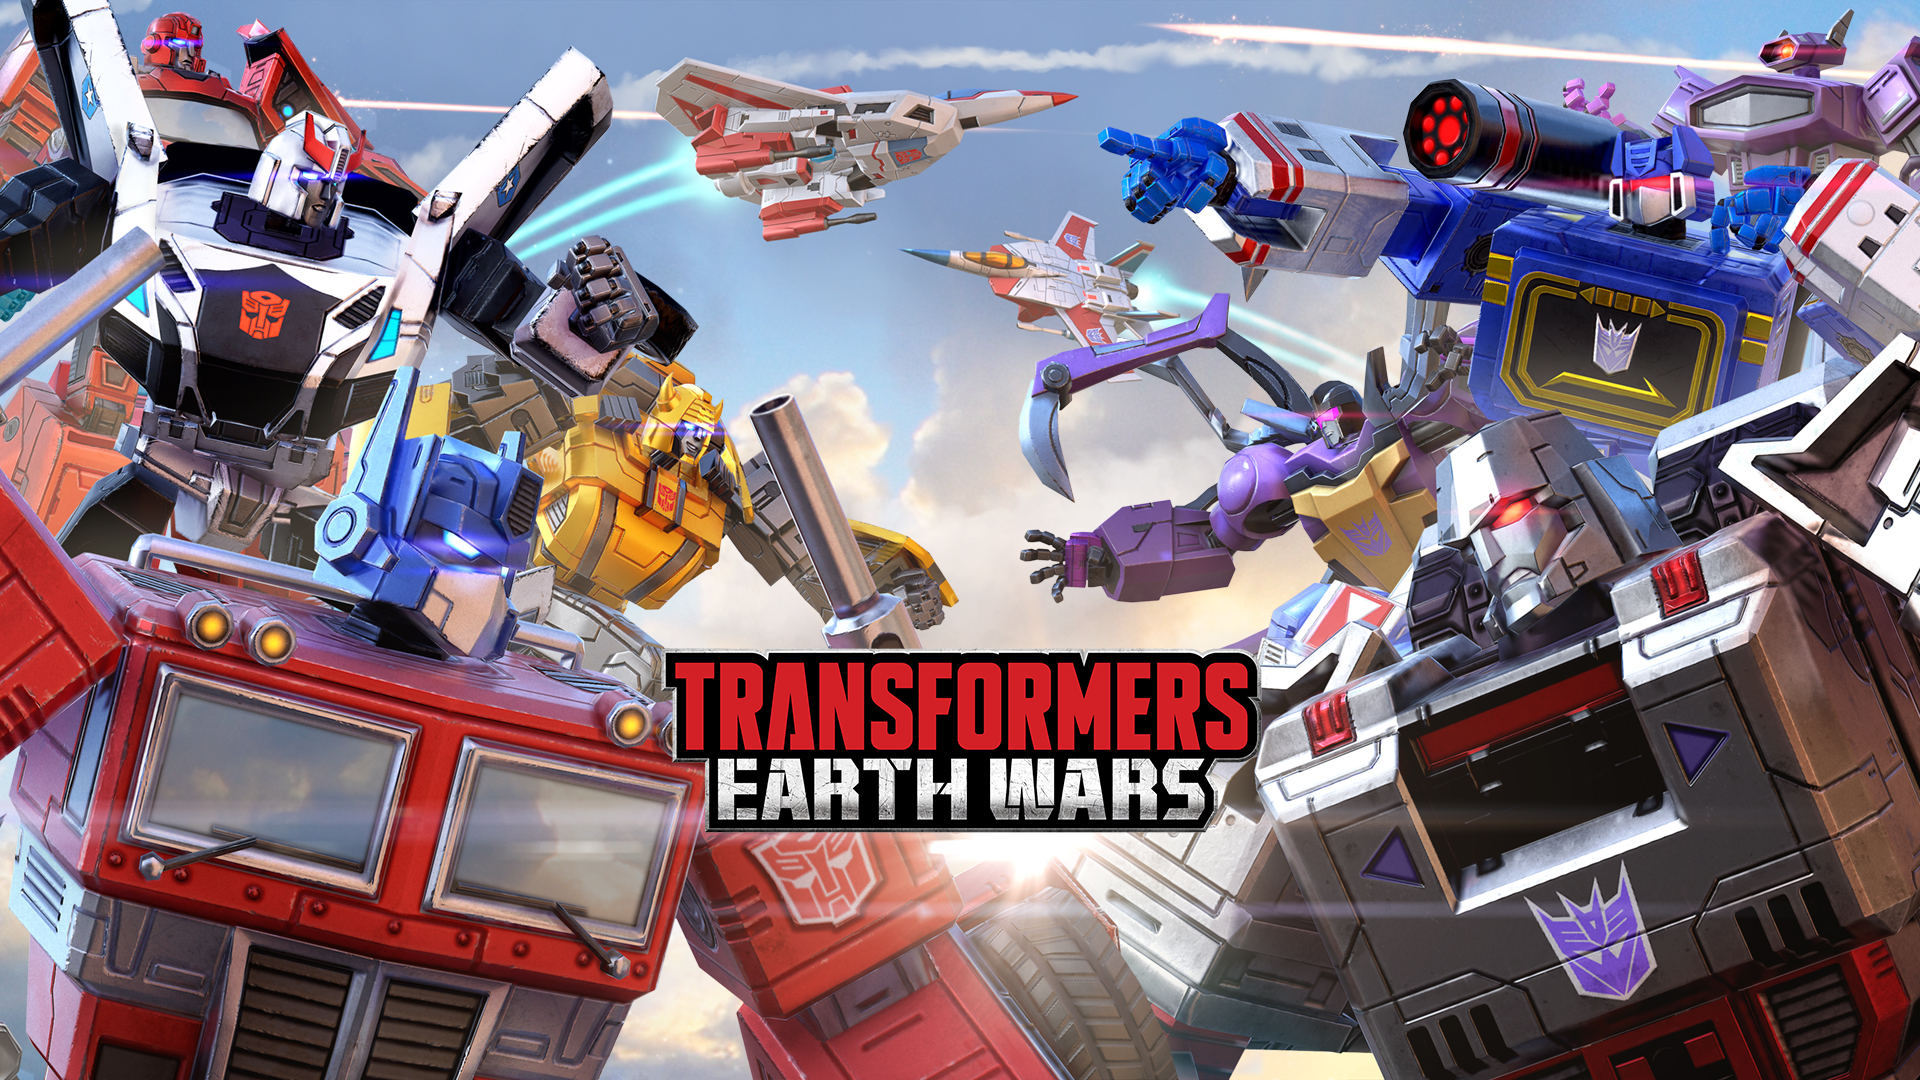 Transformers News: Transformers: Earth Wars - Return to Crystal City Event